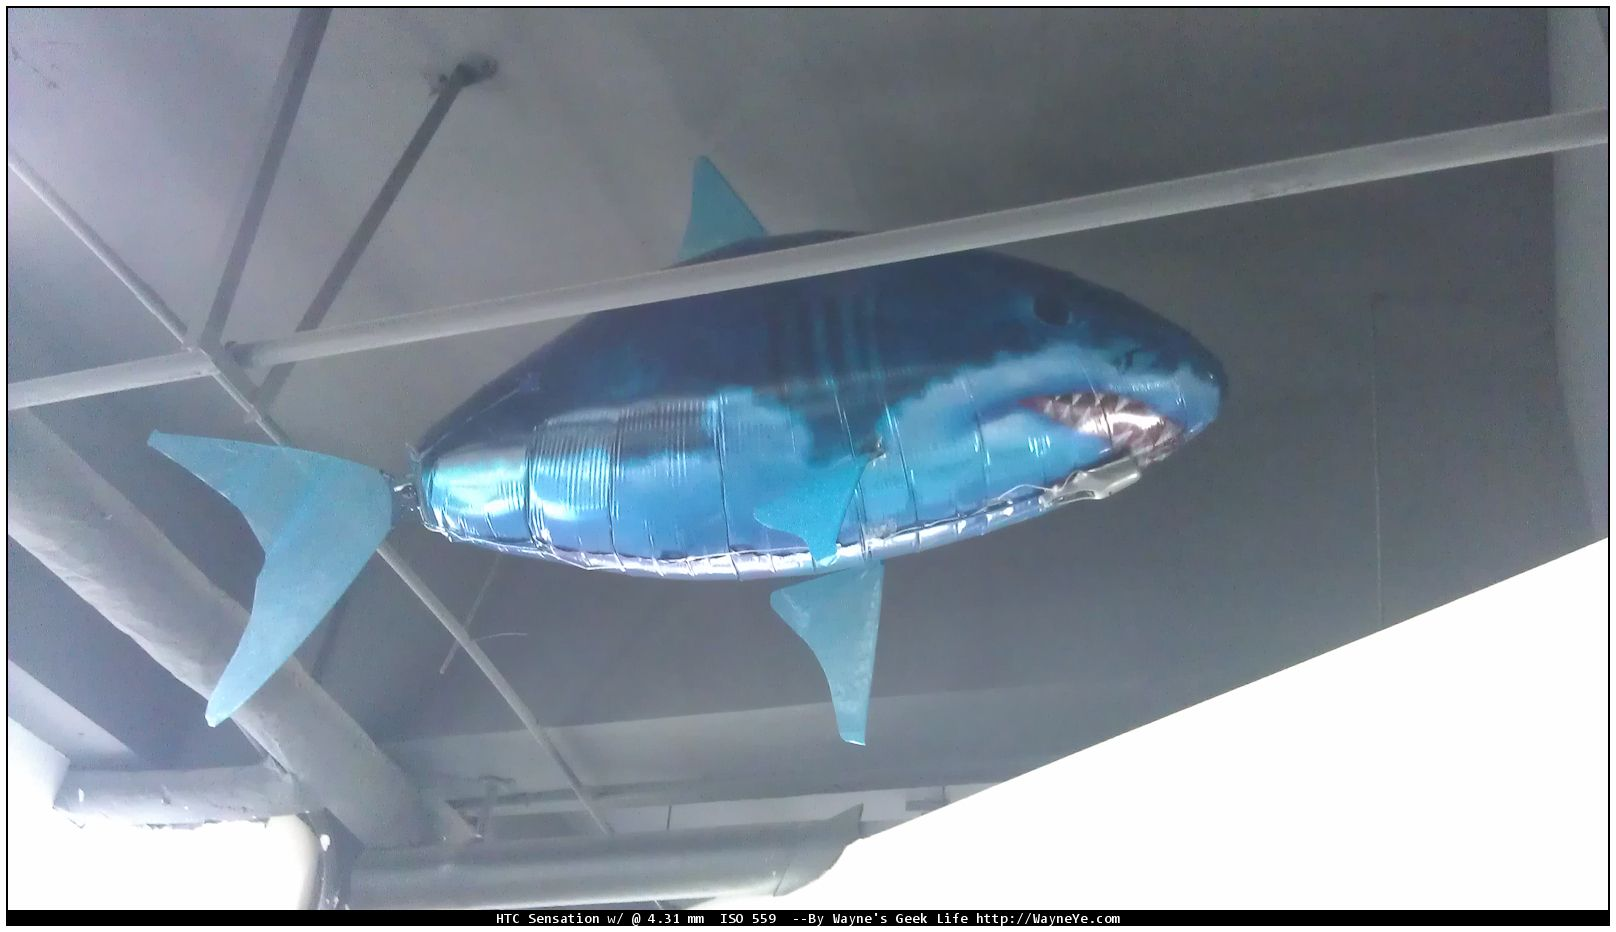 Flying shark in TW office